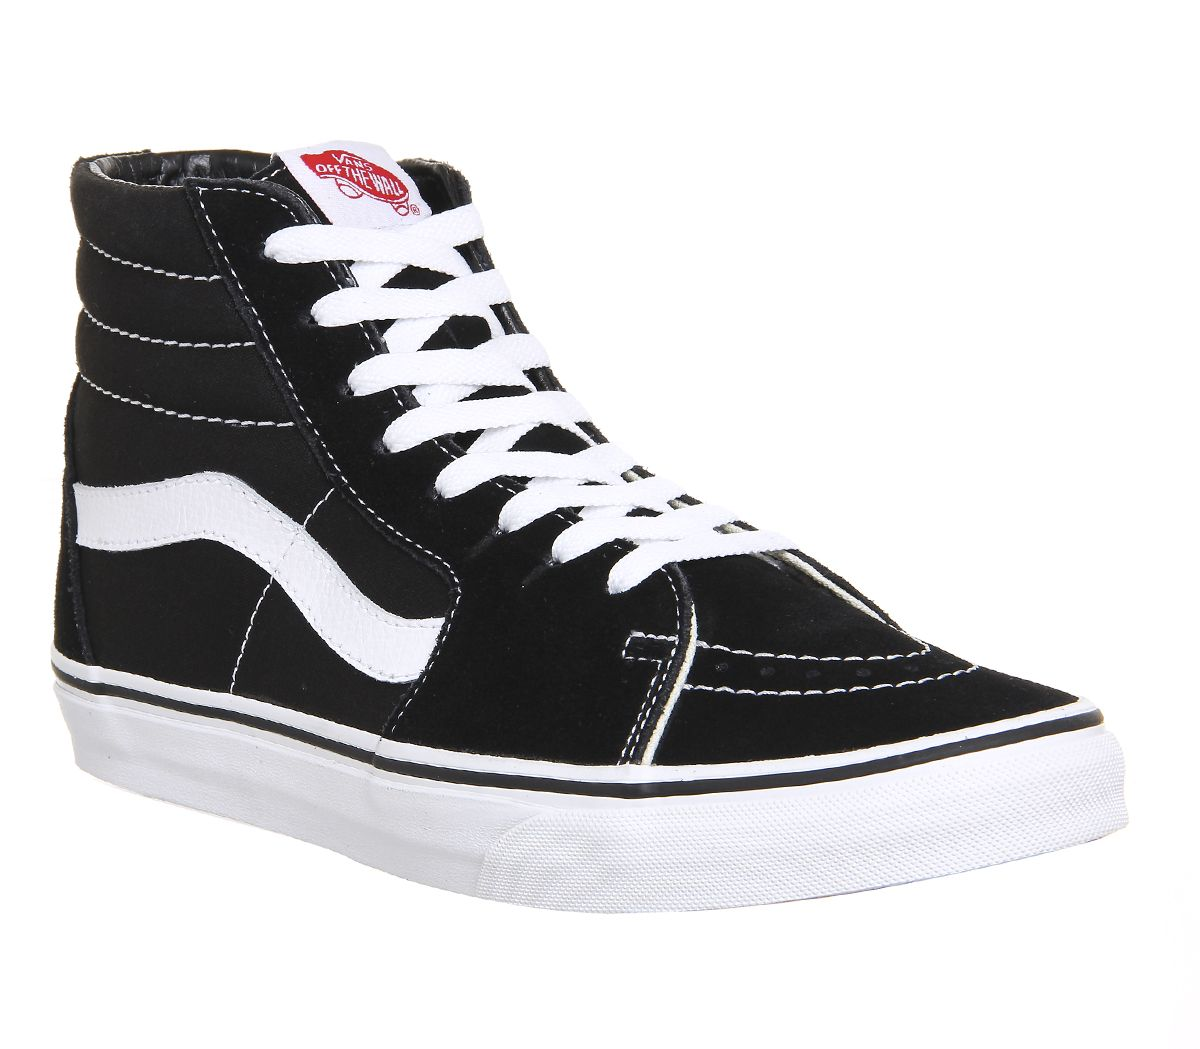 0fb4b0f000 Vans Sk8 Hi Black White Canvas - Office Girl